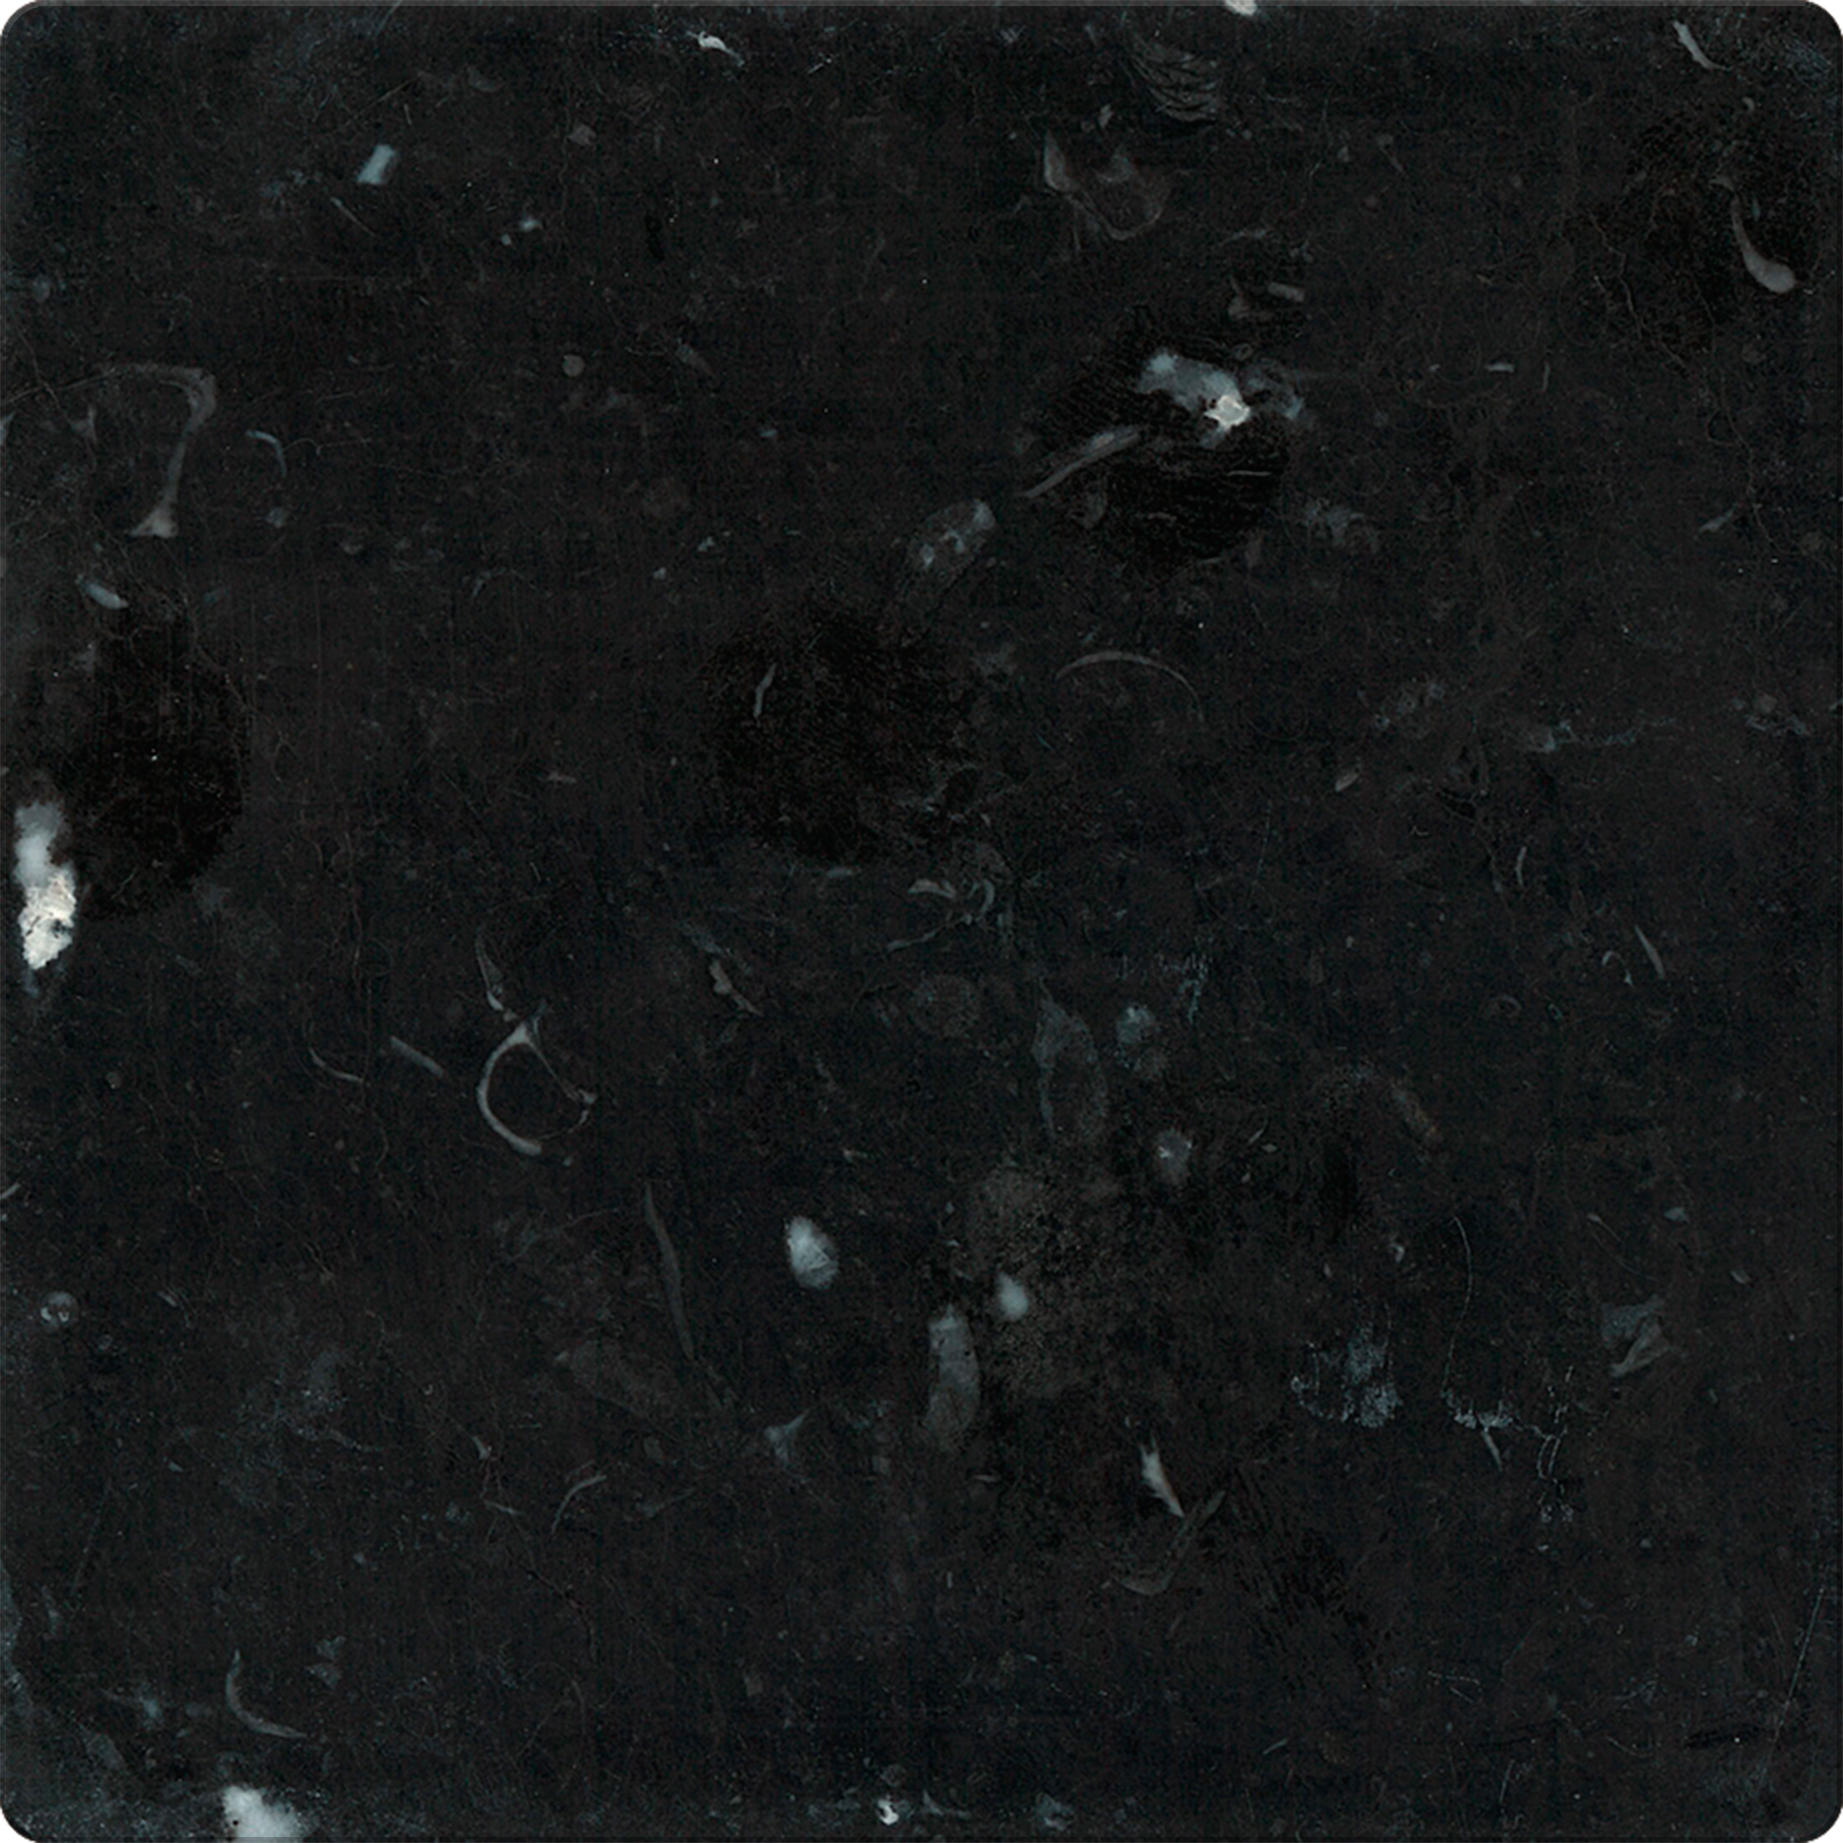 black table top texture. 3 Table Top Finishes Available. Brass. Black Texture T